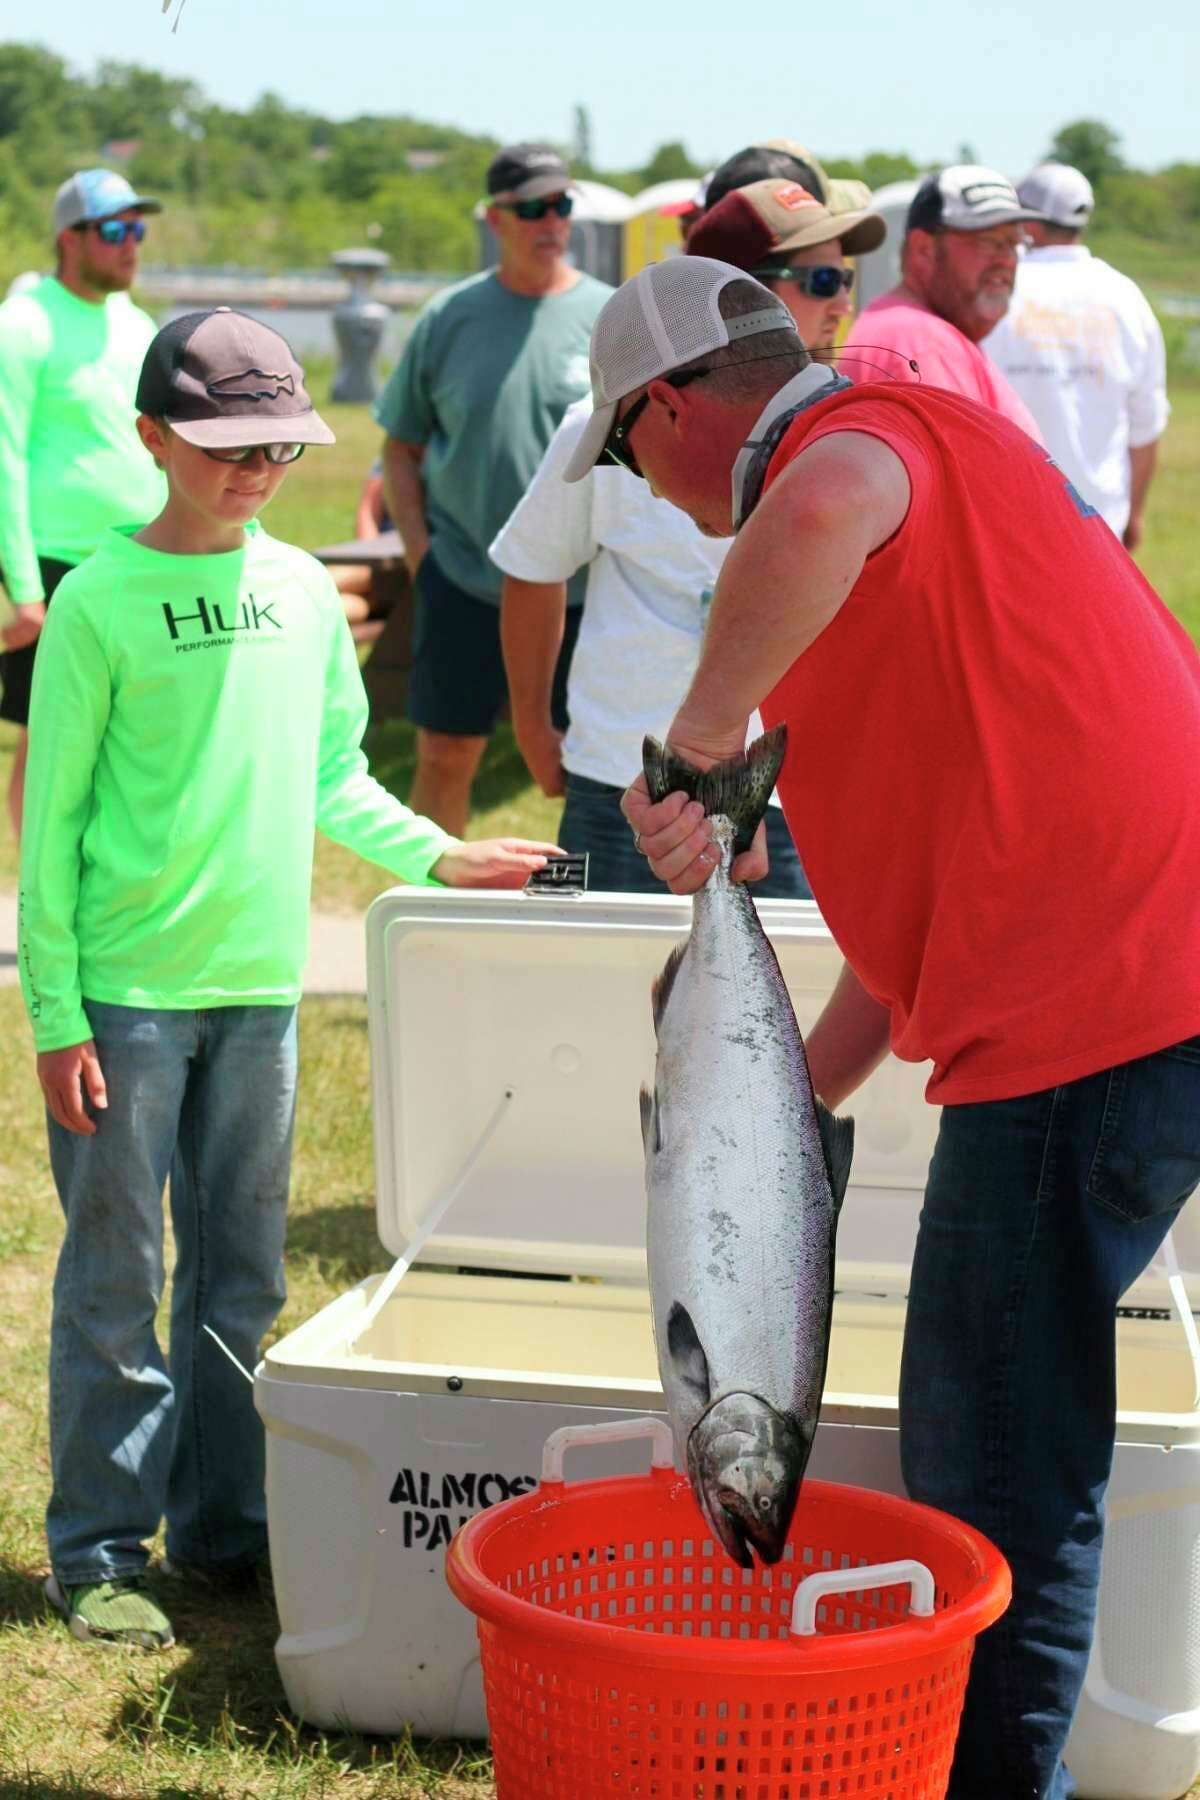 The Budweiser PRO/AM Fishing Tournament is scheduled to take place on Sunday. (File photo)